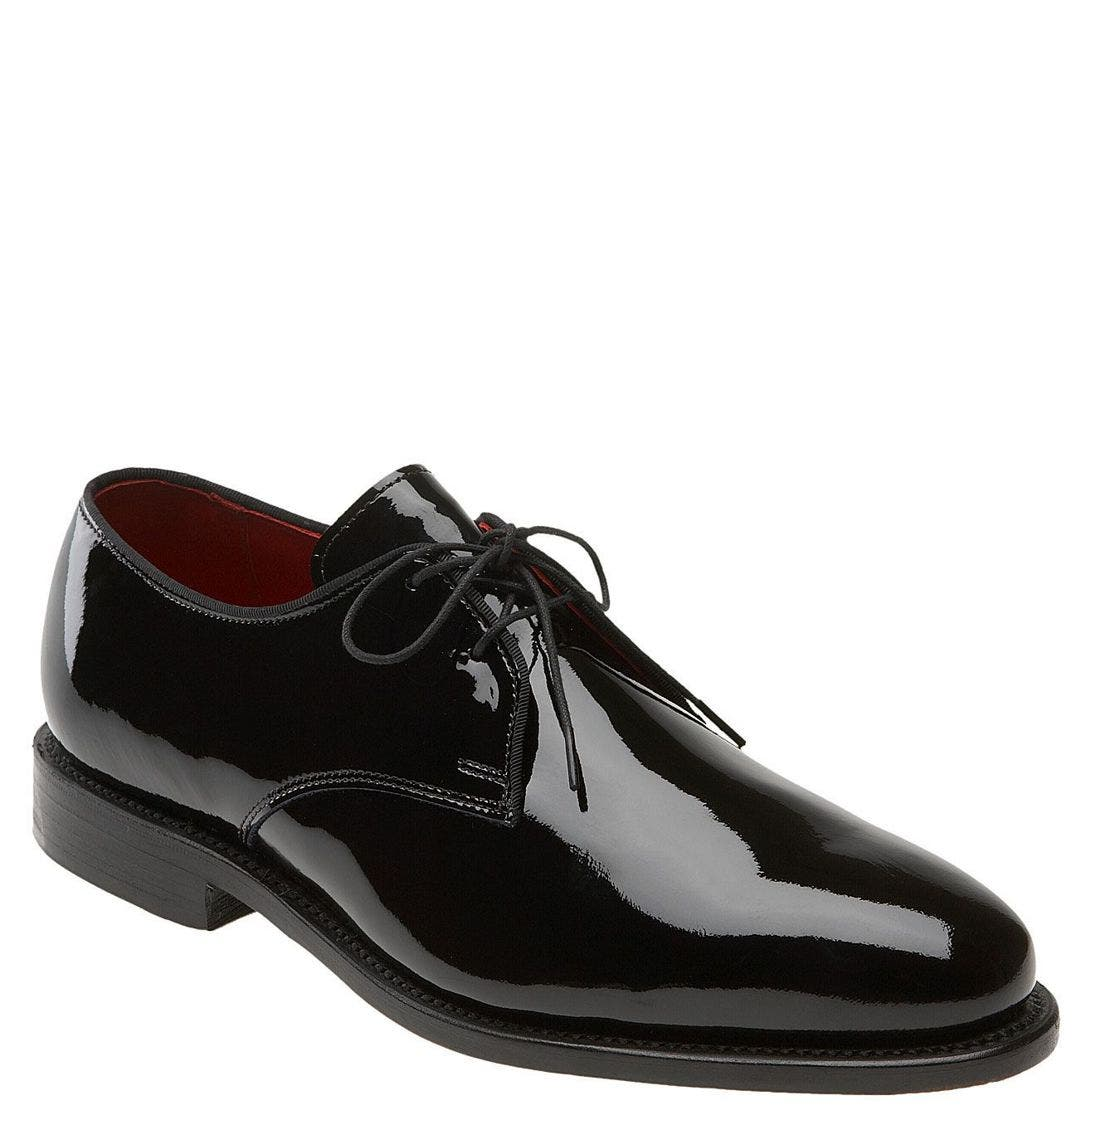 Alternate Image 1 Selected - Allen Edmonds 'Kendall' Oxford